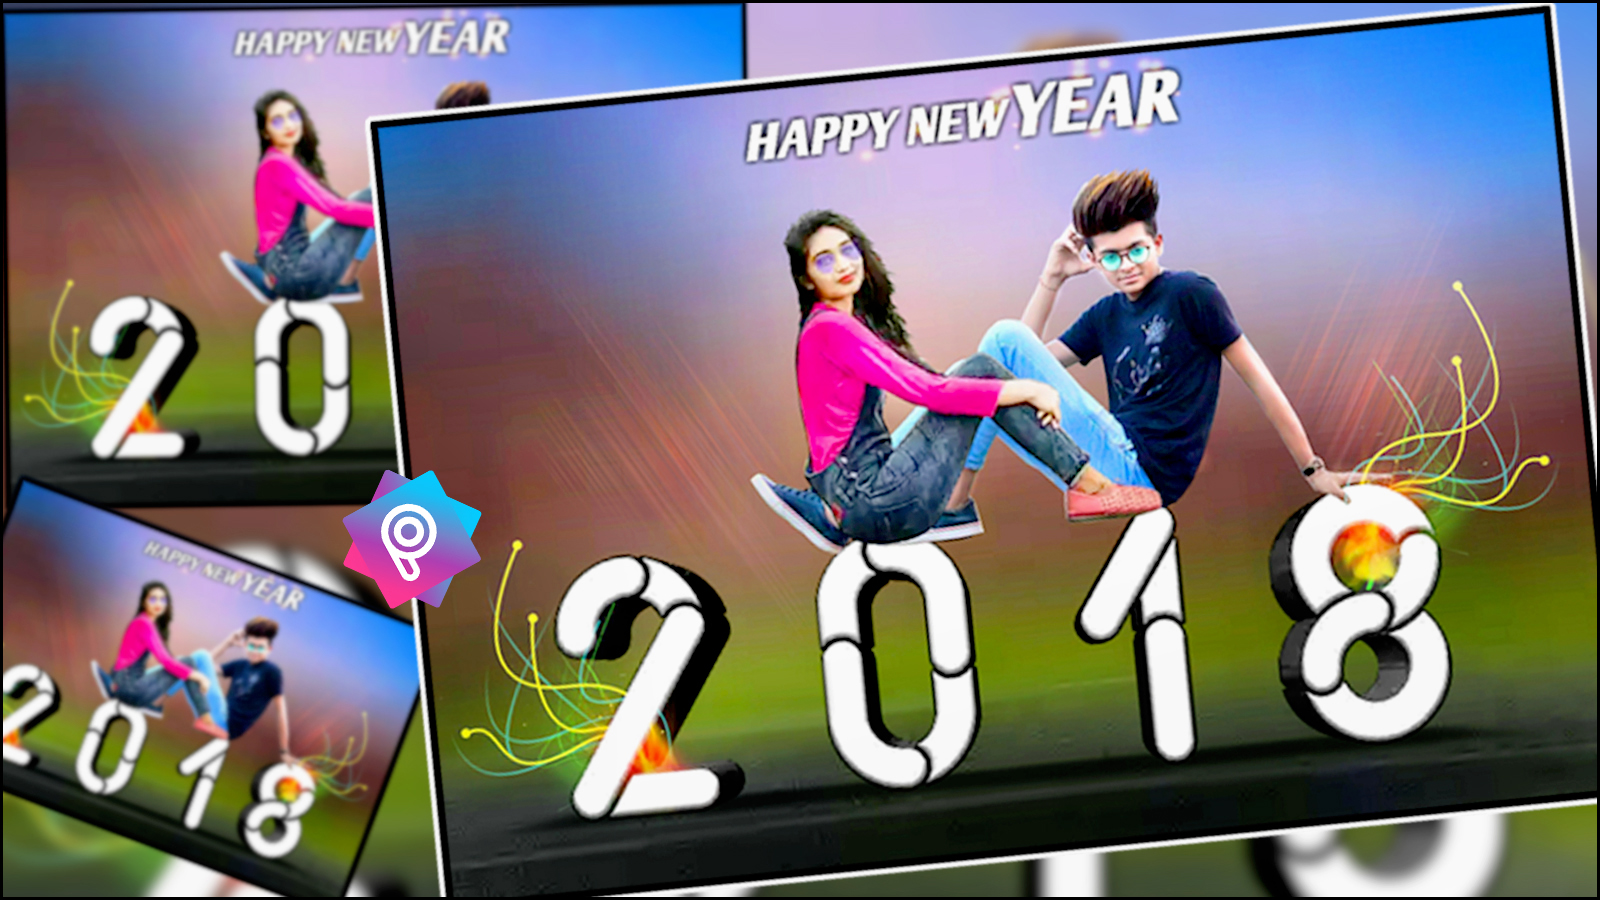 2018 New Picsart Photo Editing Happy New Year Photo Editing With